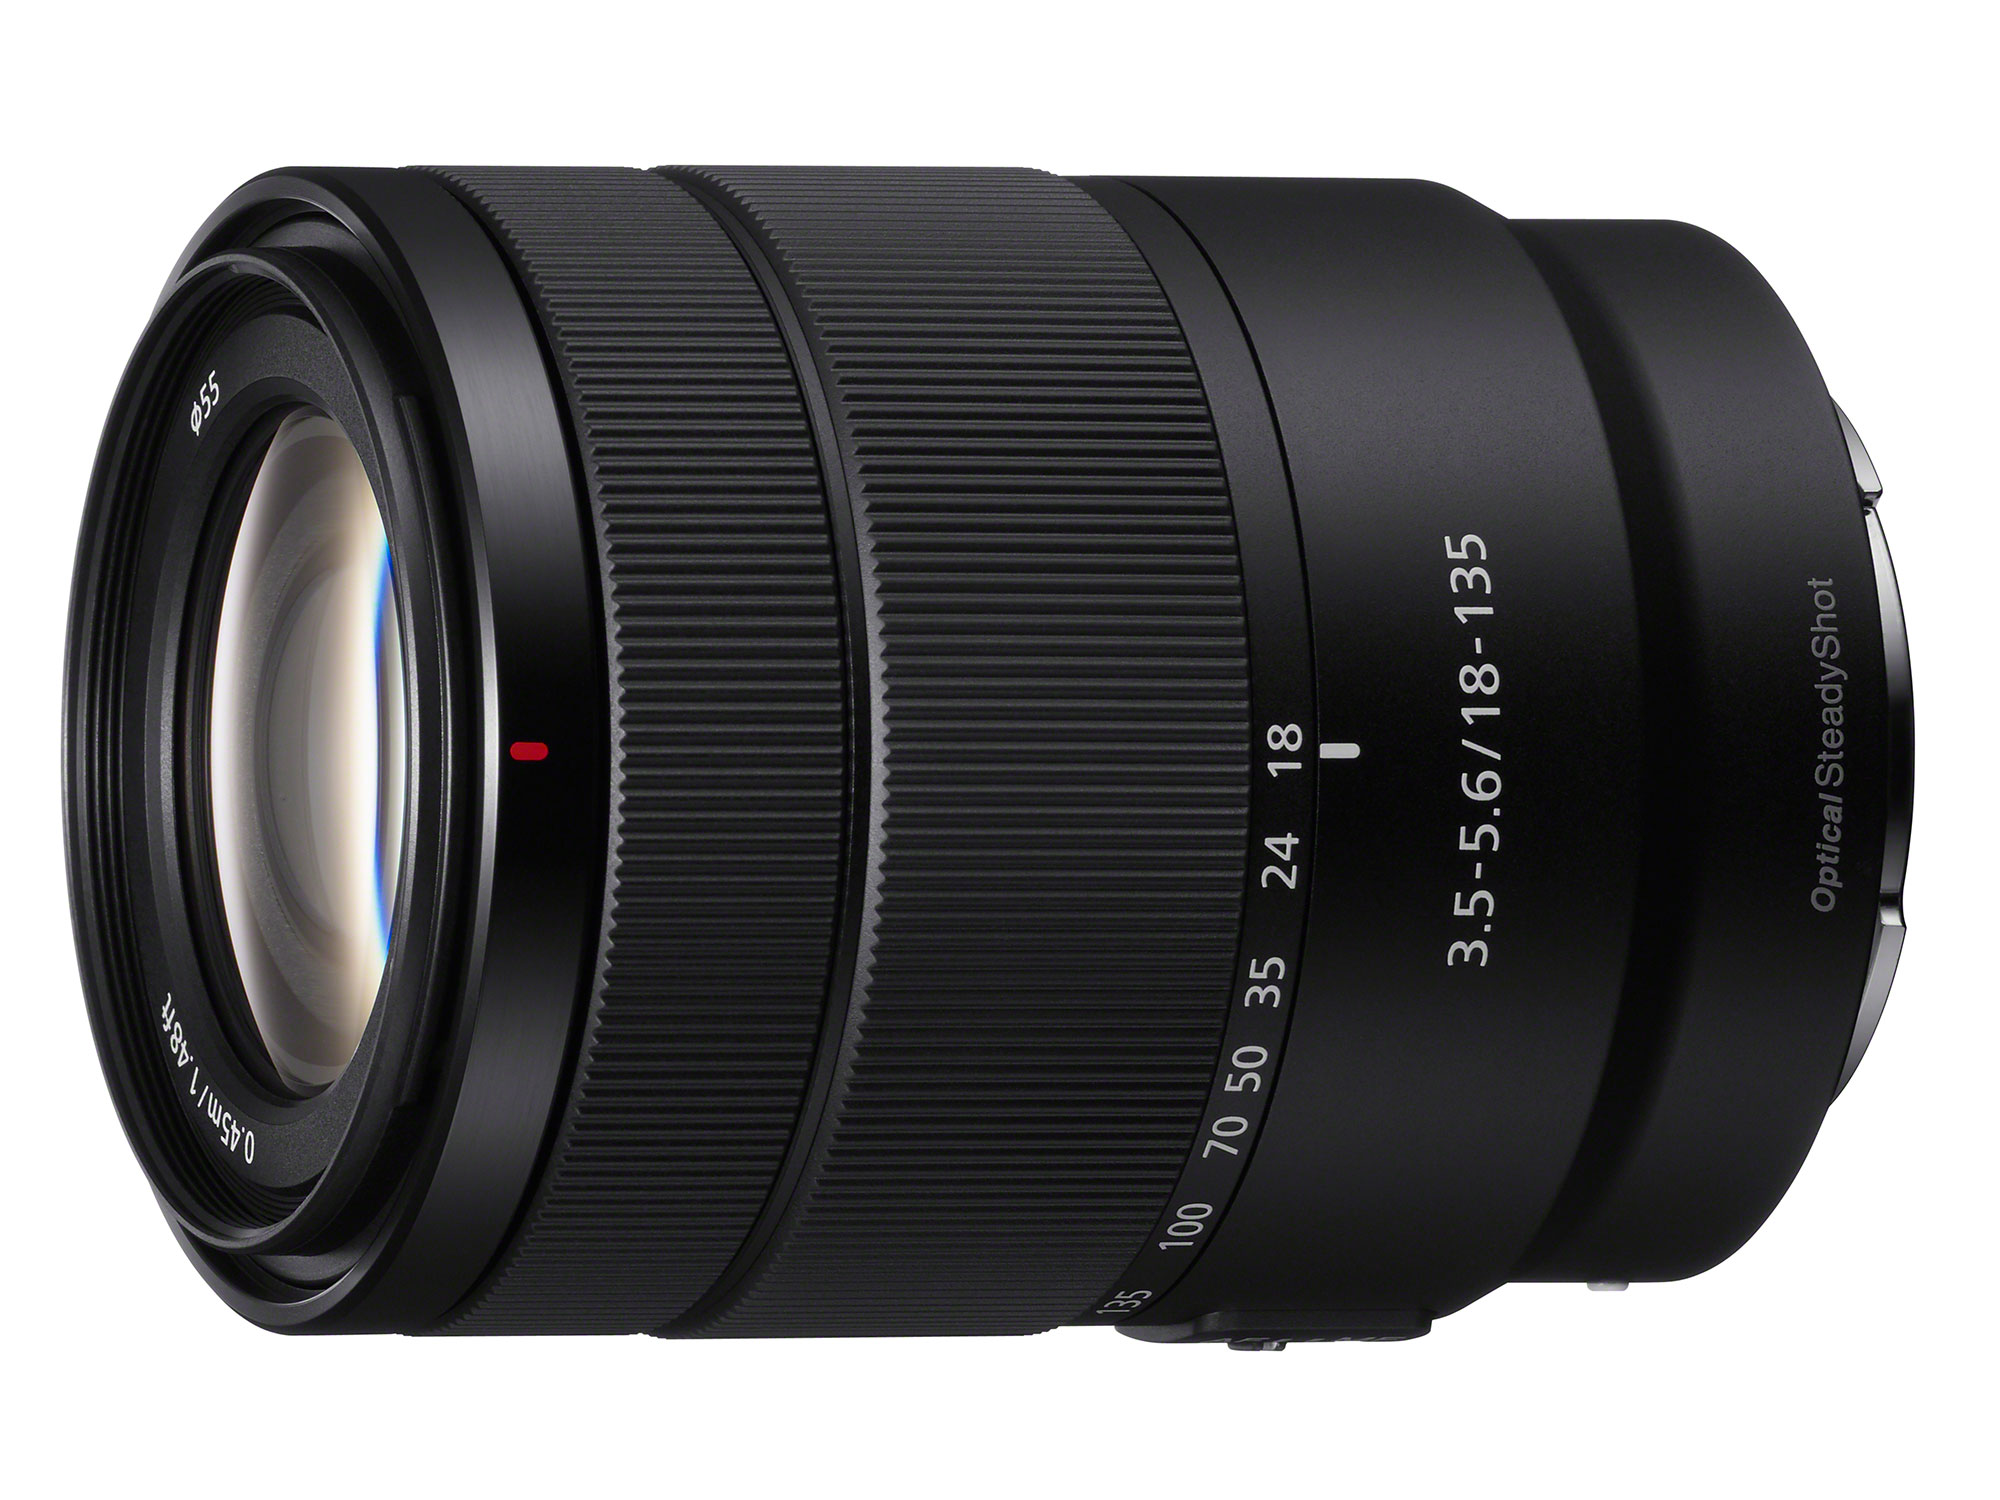 Sony E 18-135mm f/3.5-5.6 OSS Lens Announced, Price $598